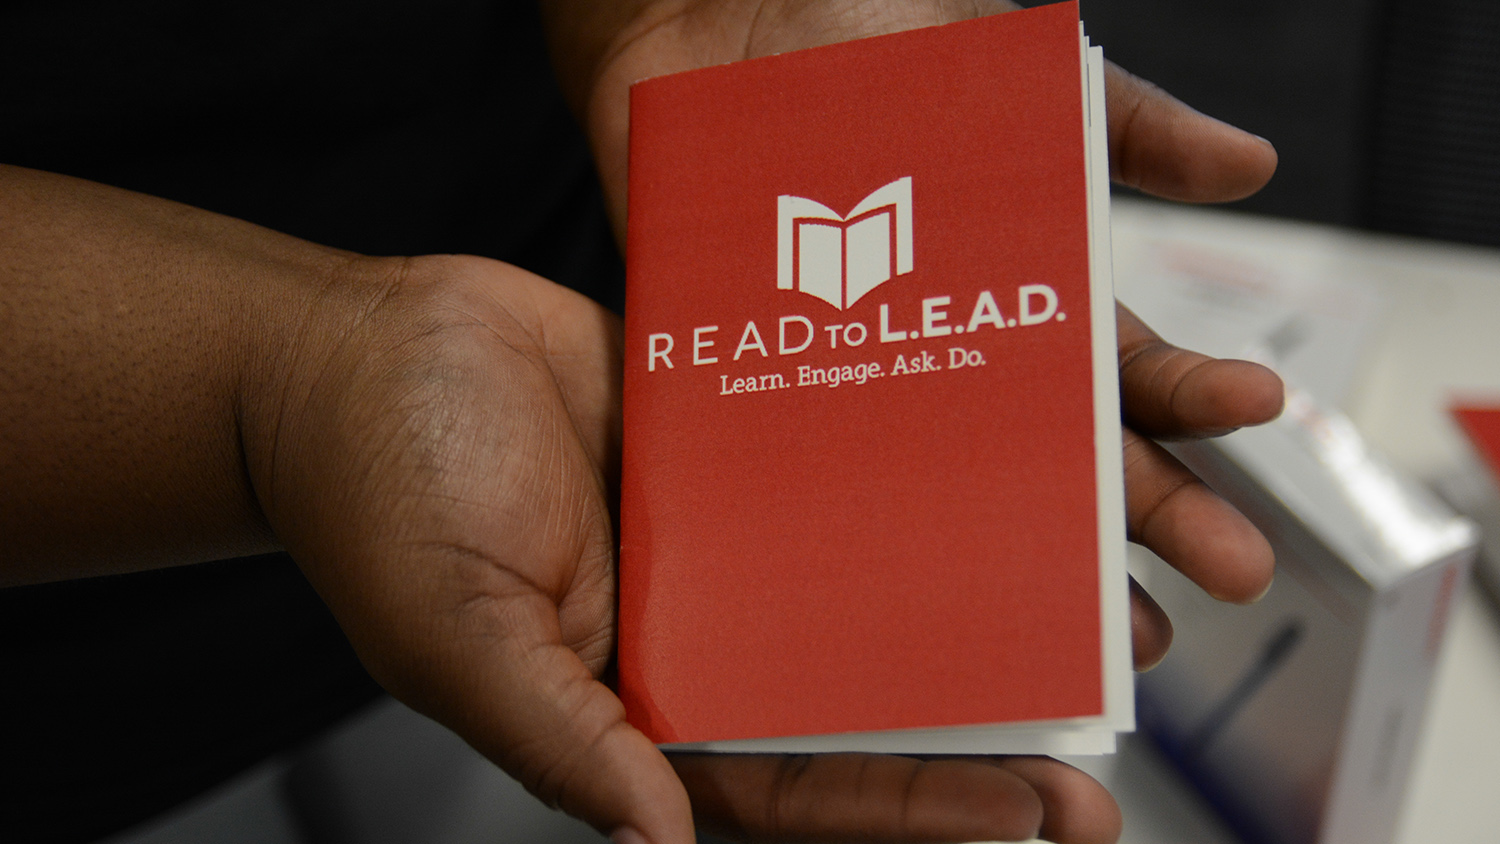 Read to Lead hands